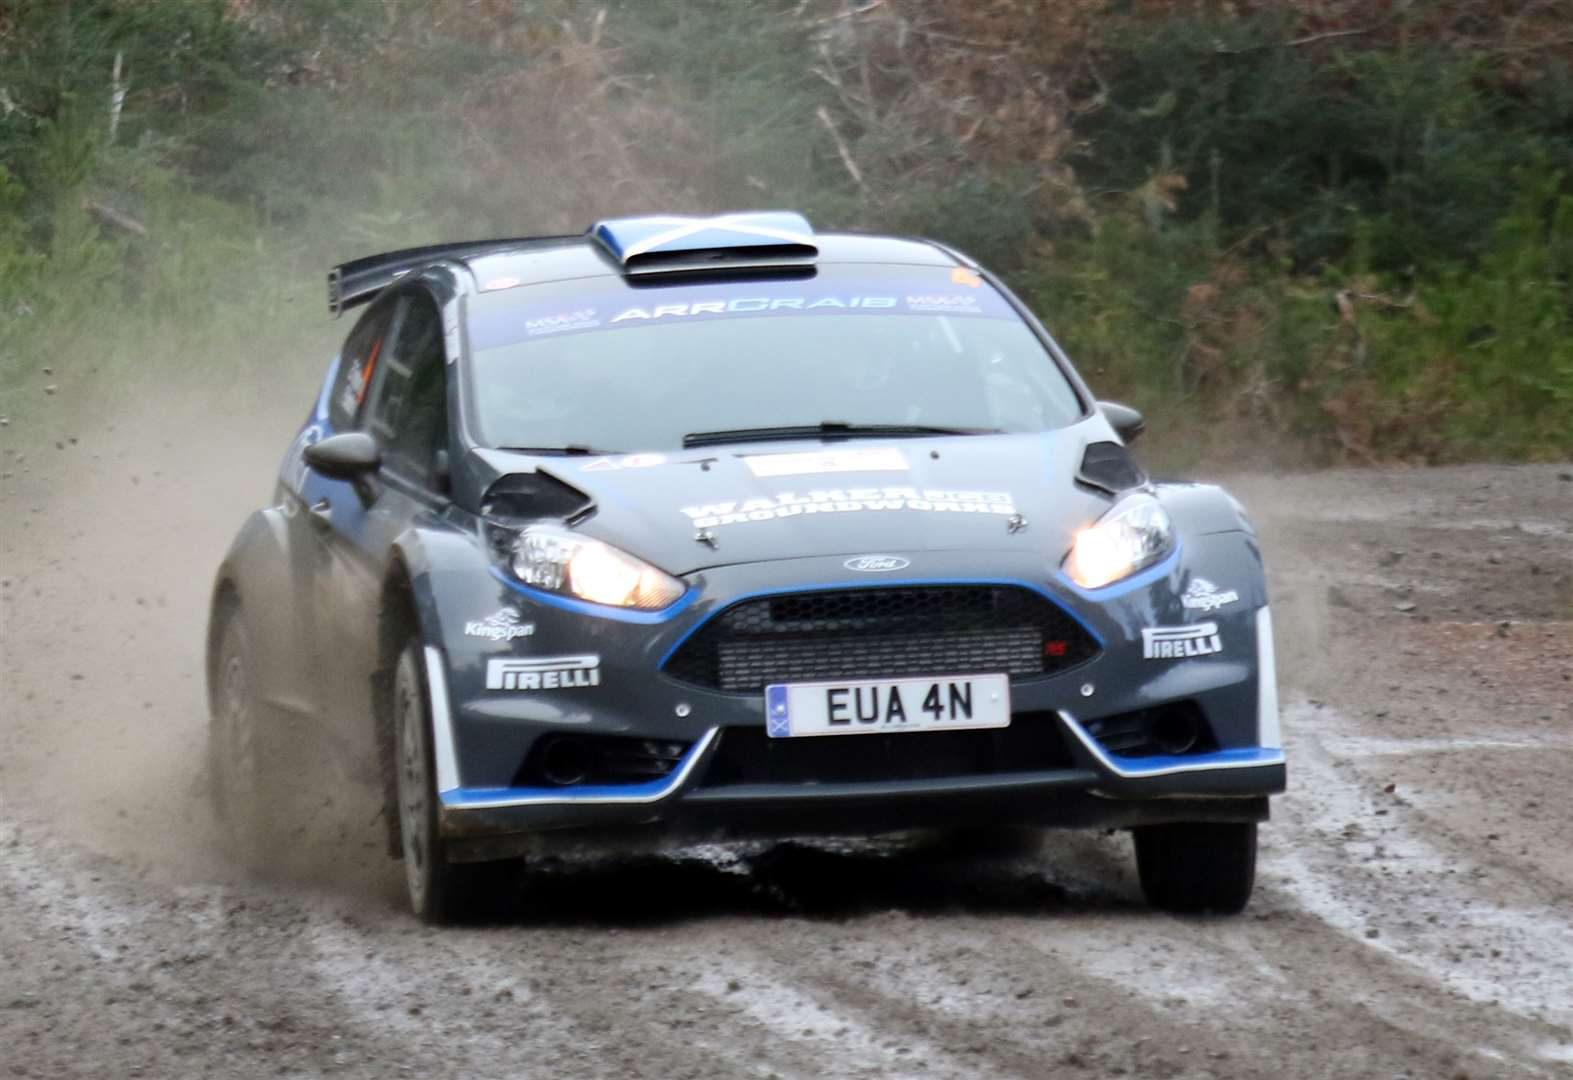 Inverness race to be moved in Scottish rally driving calendar